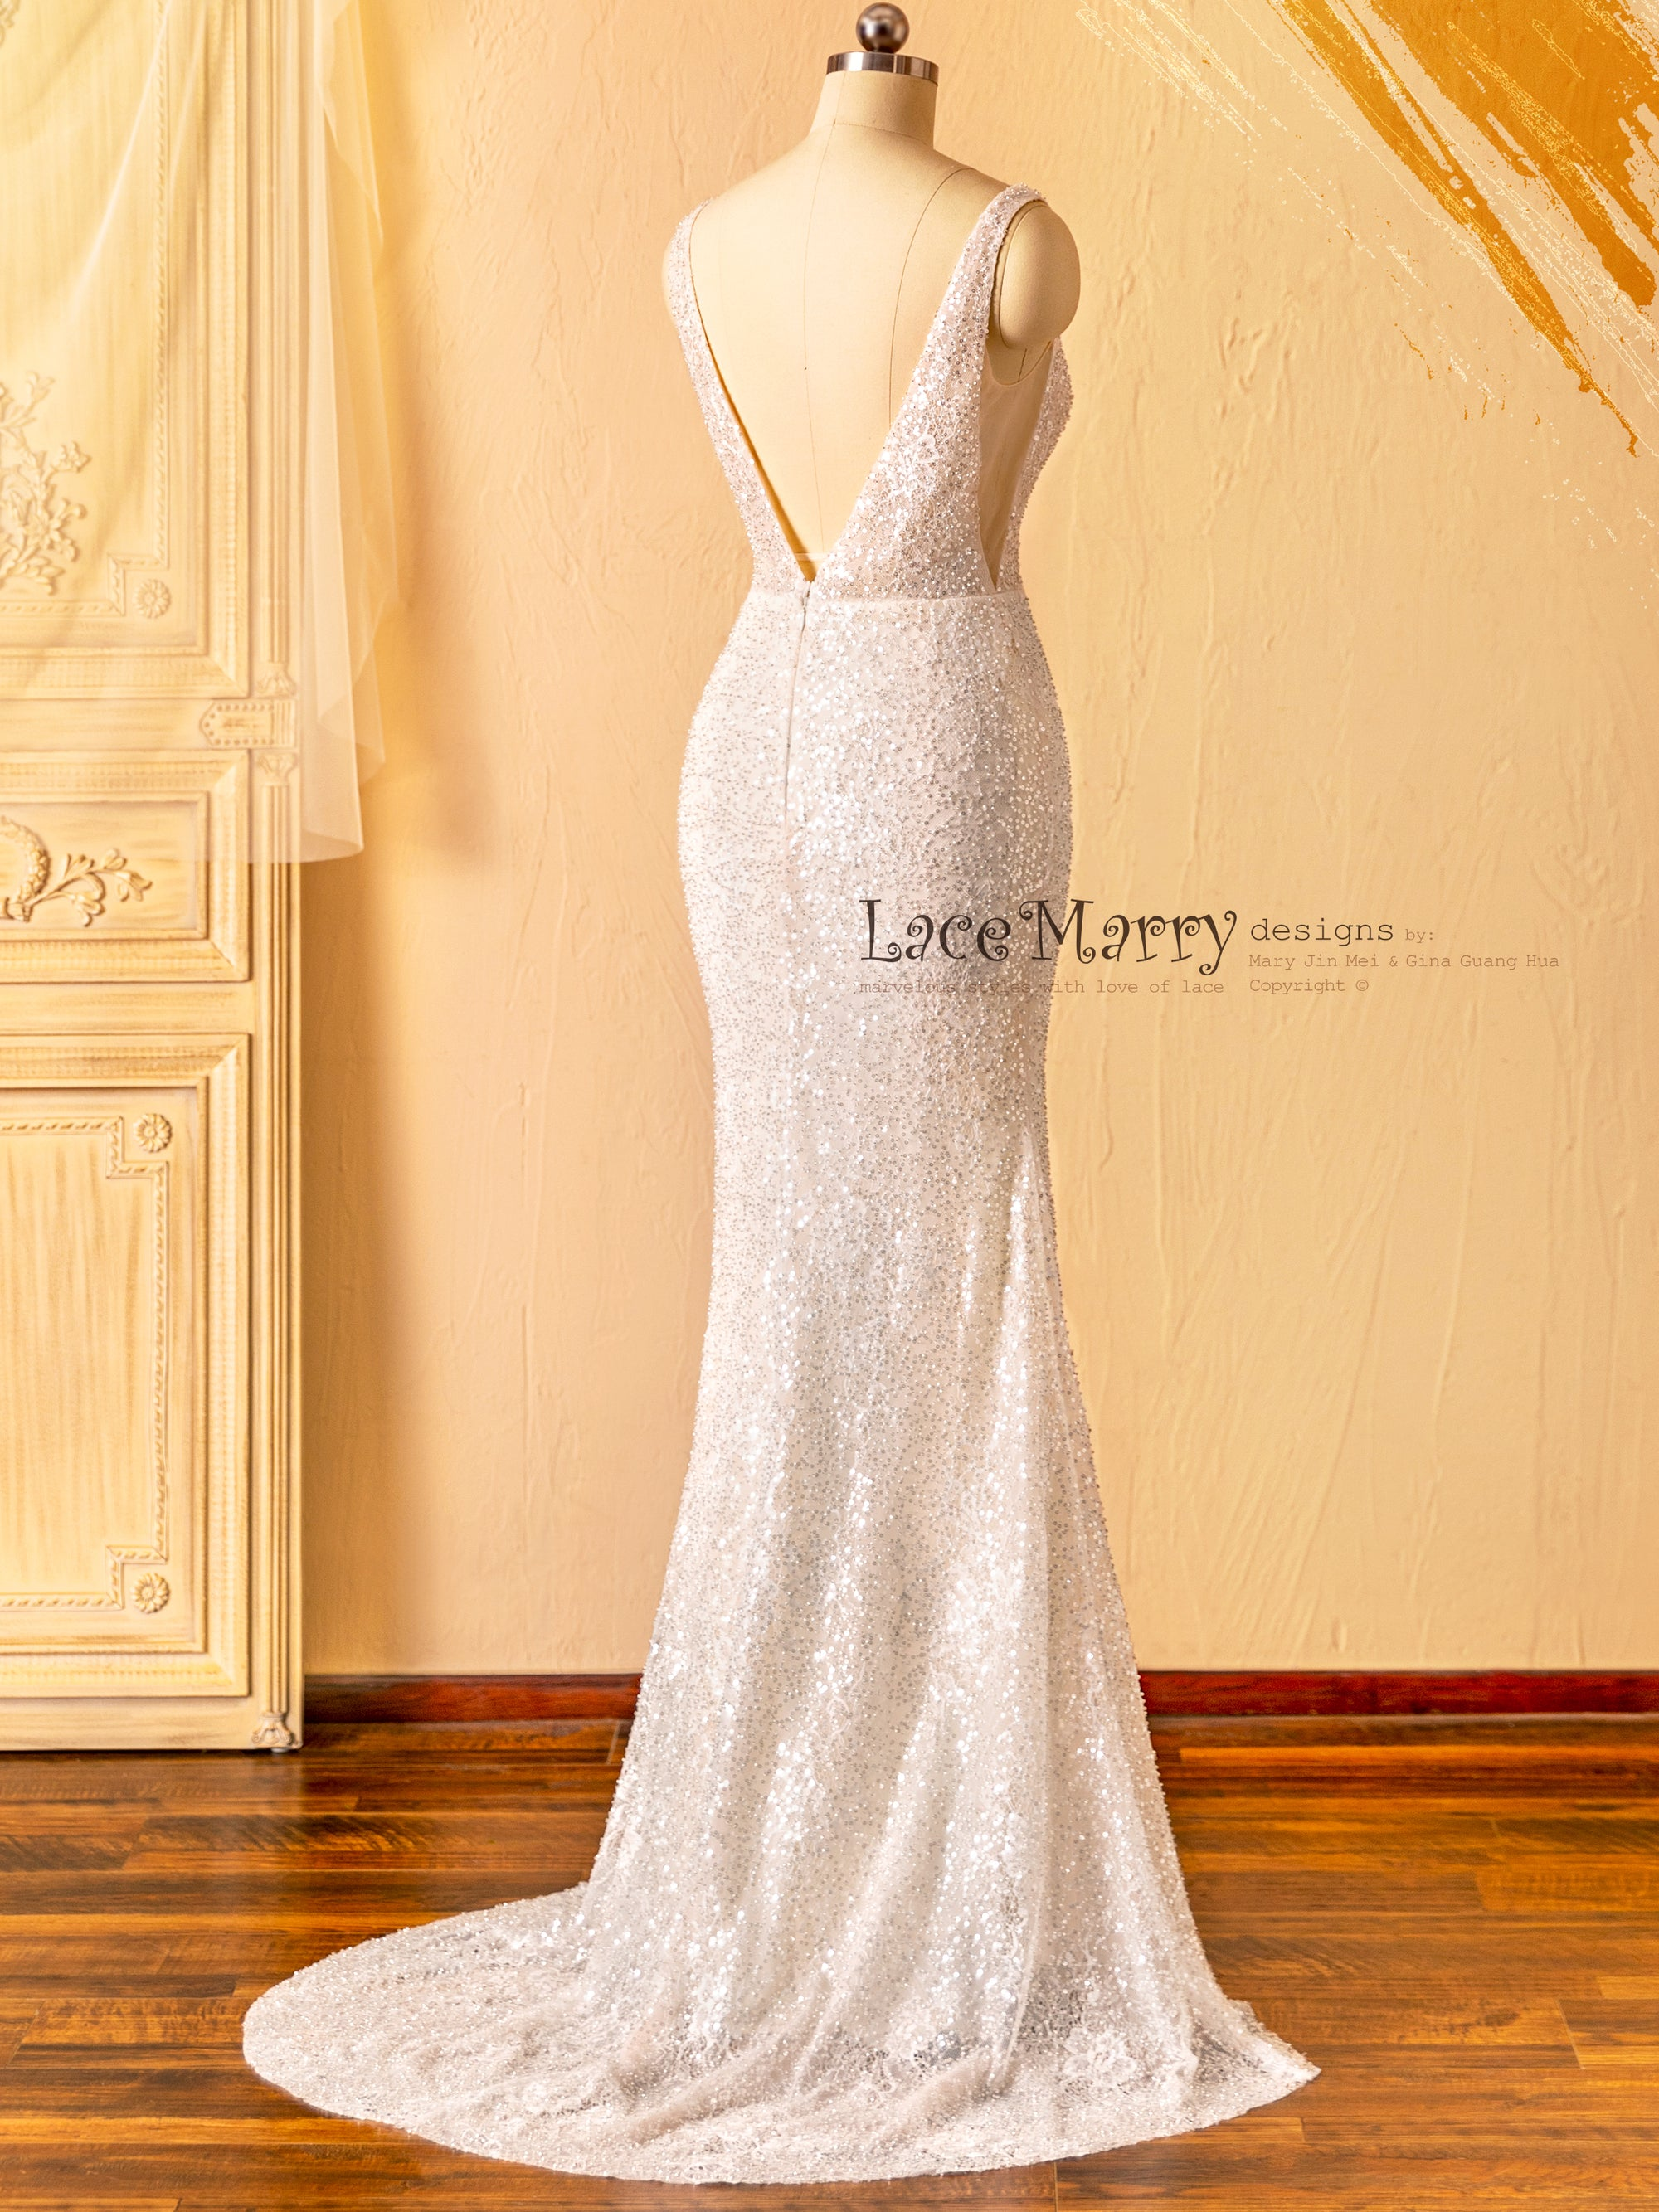 Illusion Wedding Dress with Sparkling Fabric